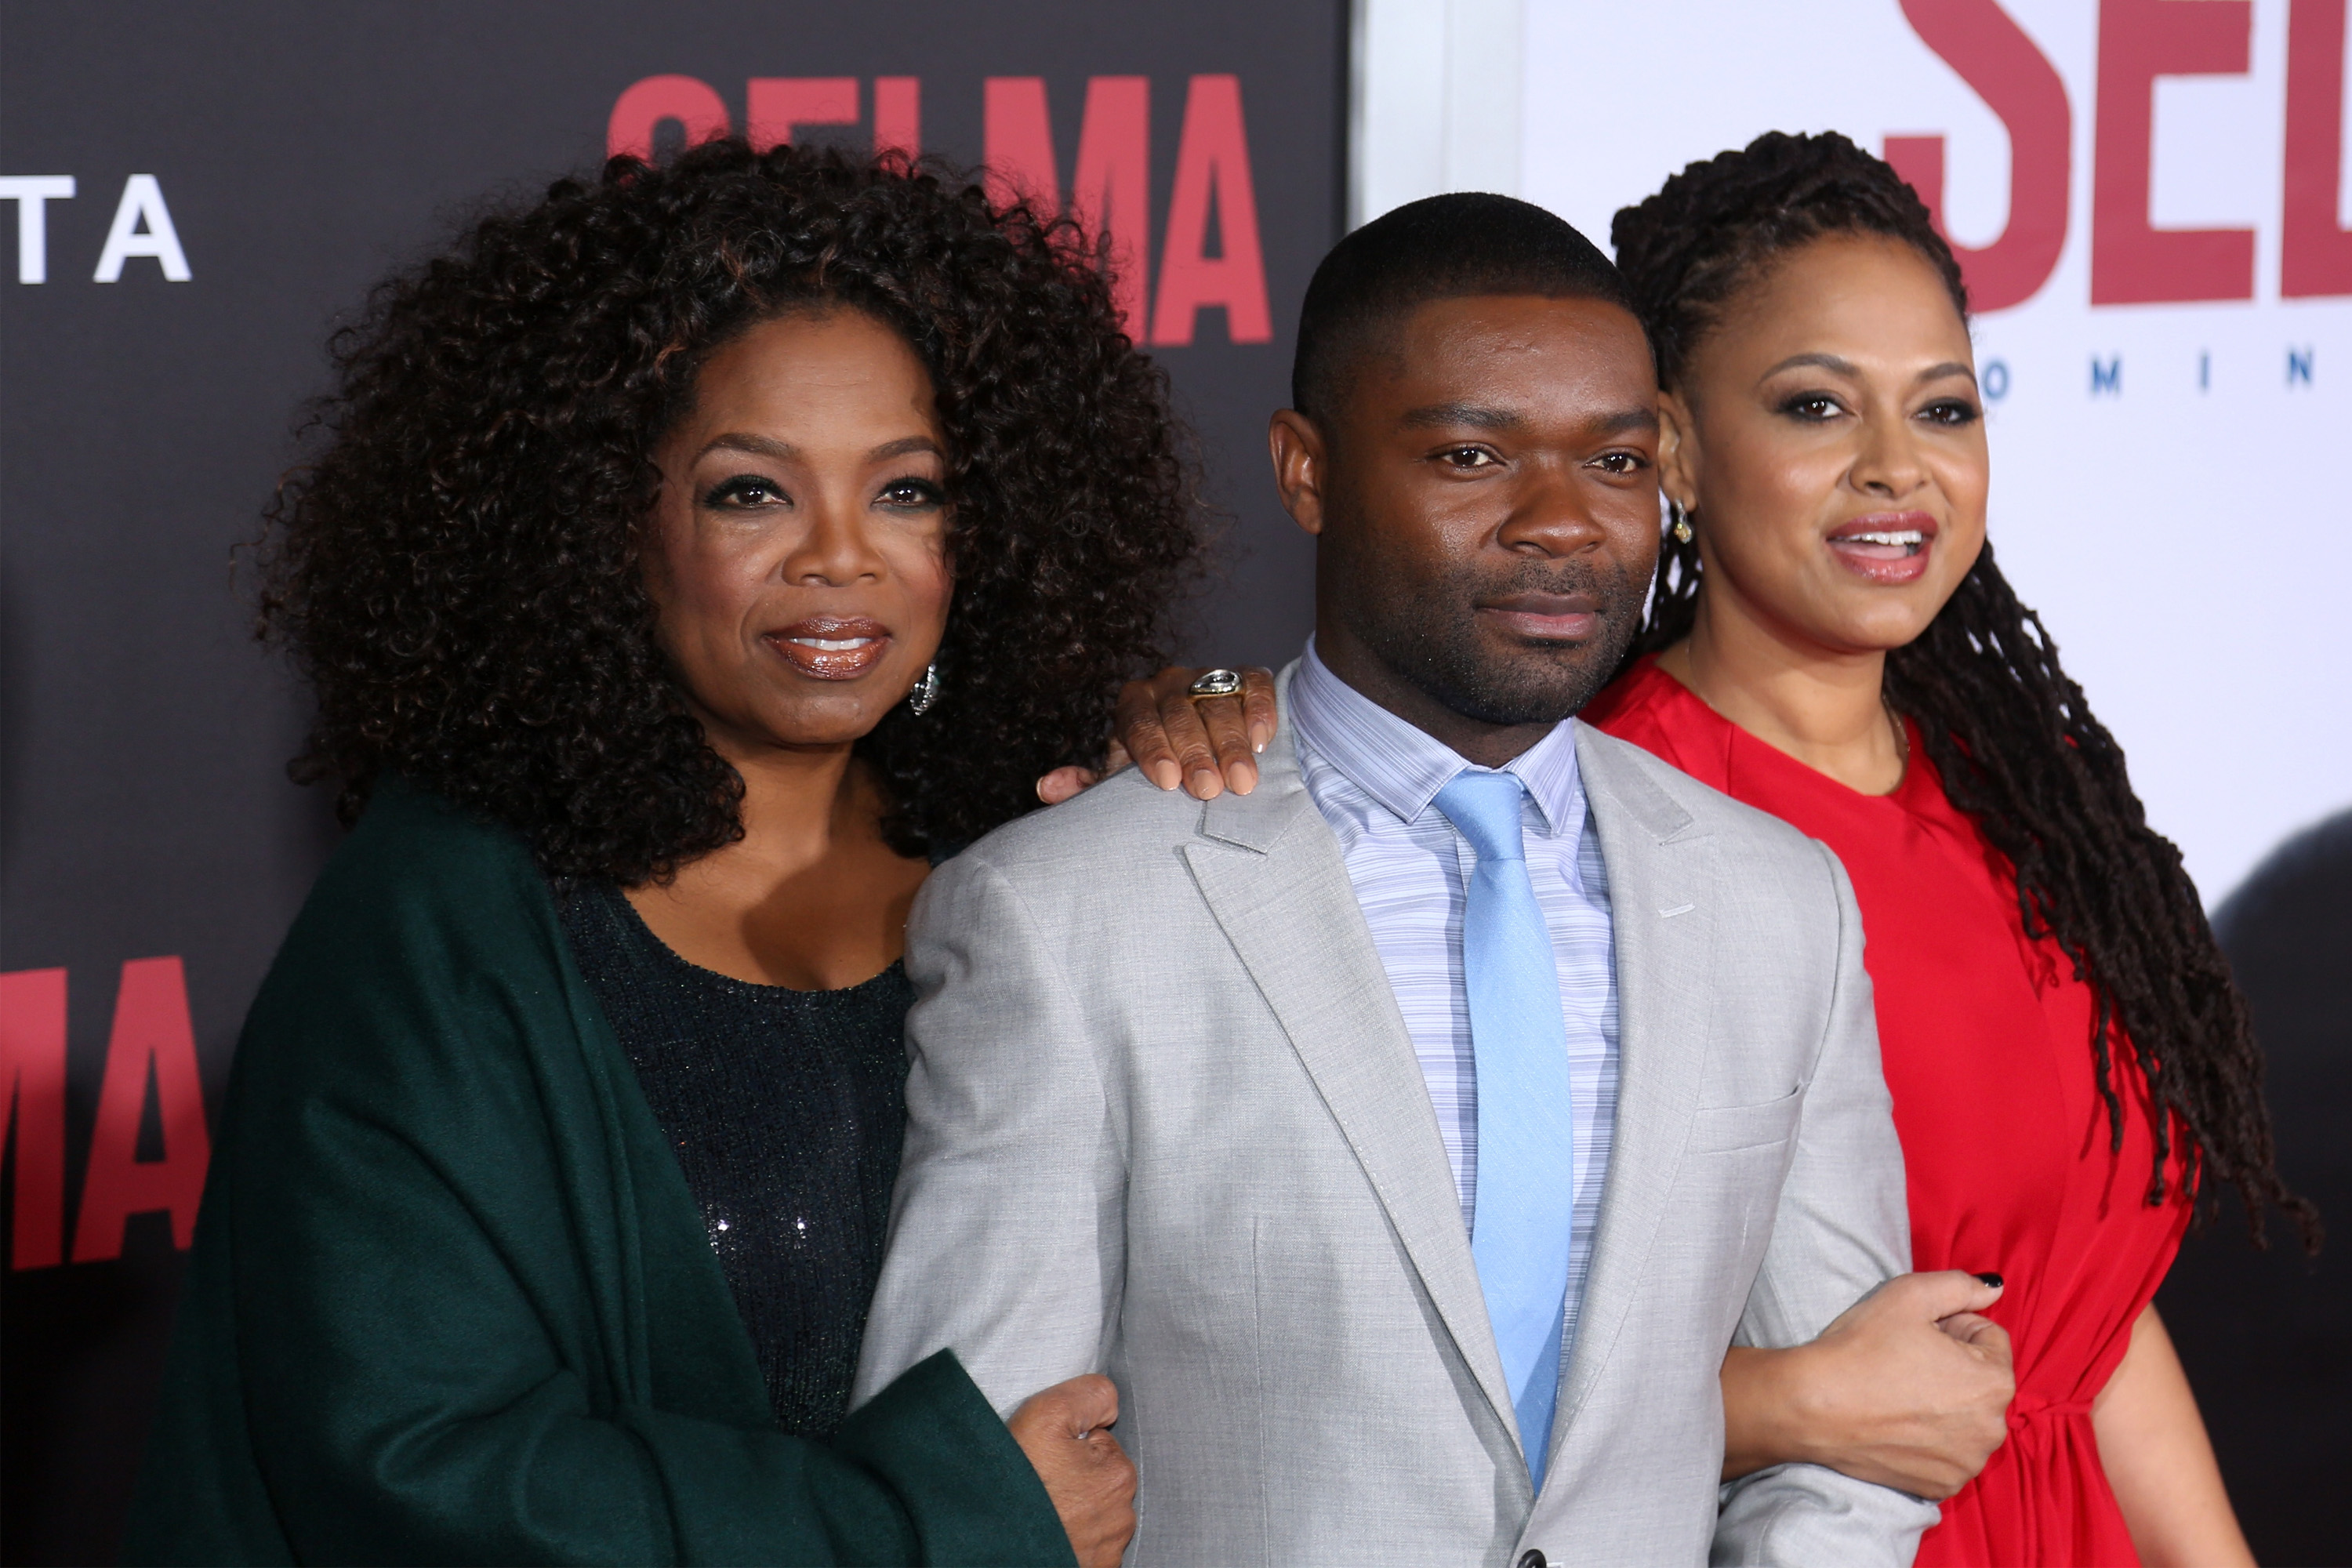 From left: Oprah, David Oyelowo, and Ava DuVernay, attend the  Selma  New York Premiere at Ziegfeld Theater on Dec. 14, 2014 in New York City.